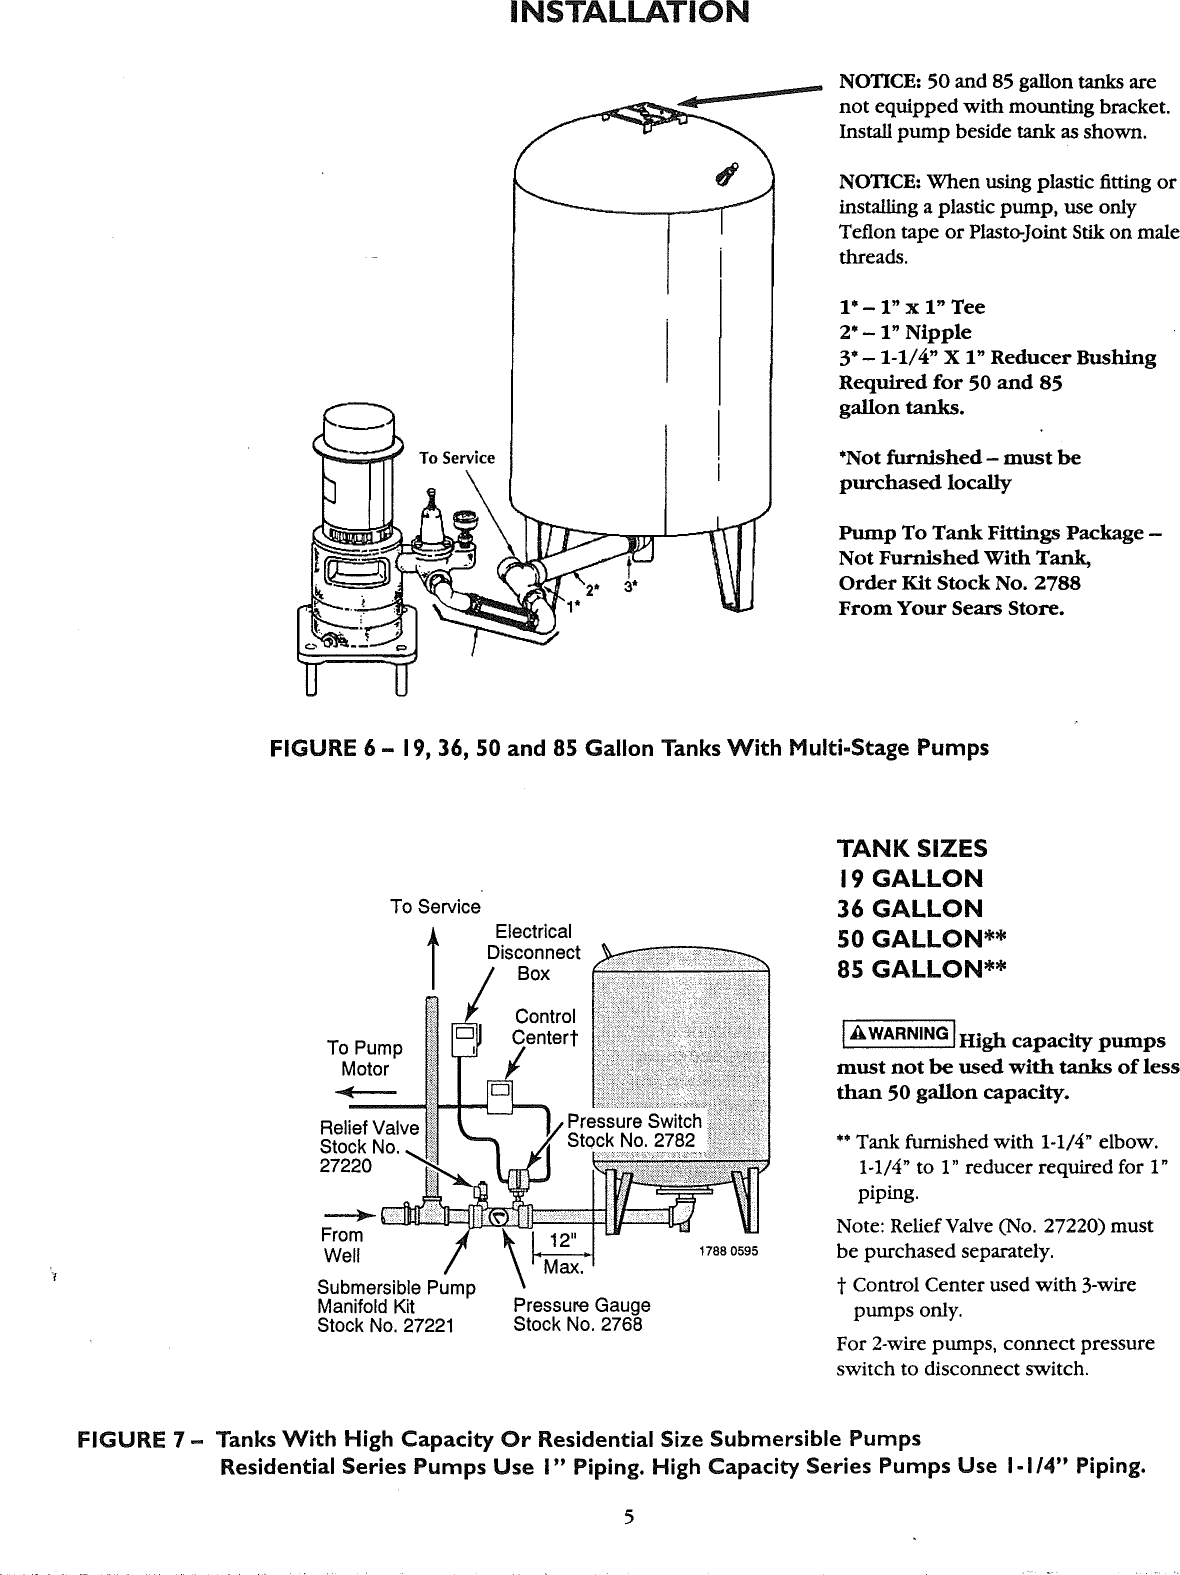 Craftsman 390291352 User Manual Captive Air Tank Manuals And Guides Two Wire Submersible Well Pump Diagram Page 5 Of 12